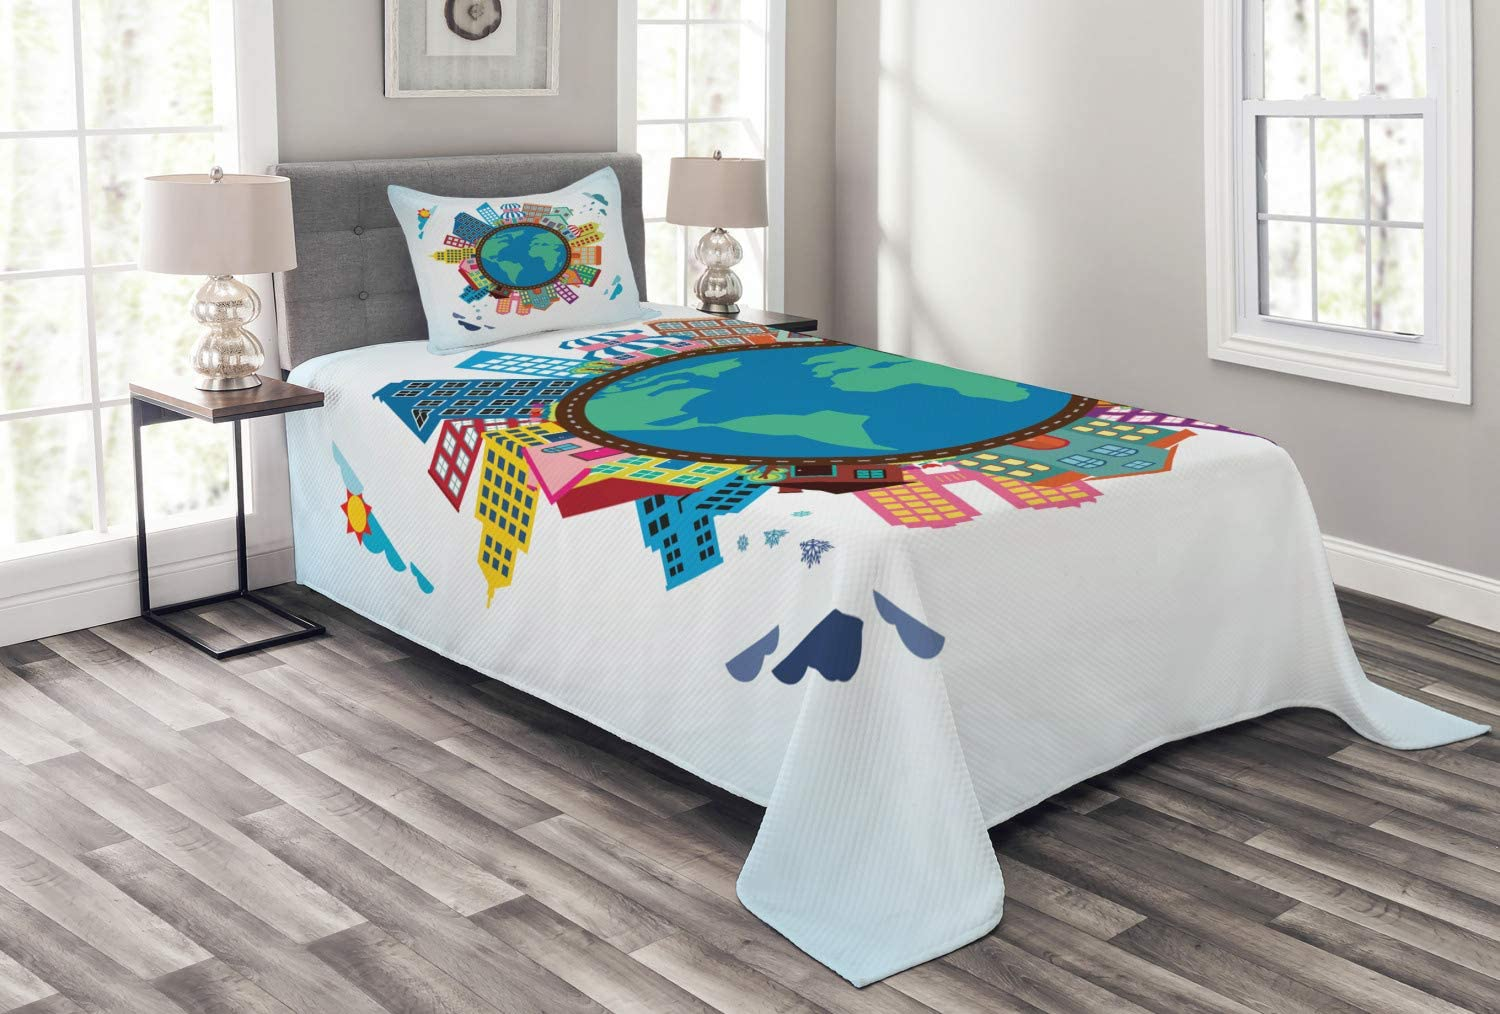 Ambesonne Overseas parallel import regular item World Map Bedspread Max 50% OFF of Illustration Cartoon Abstract